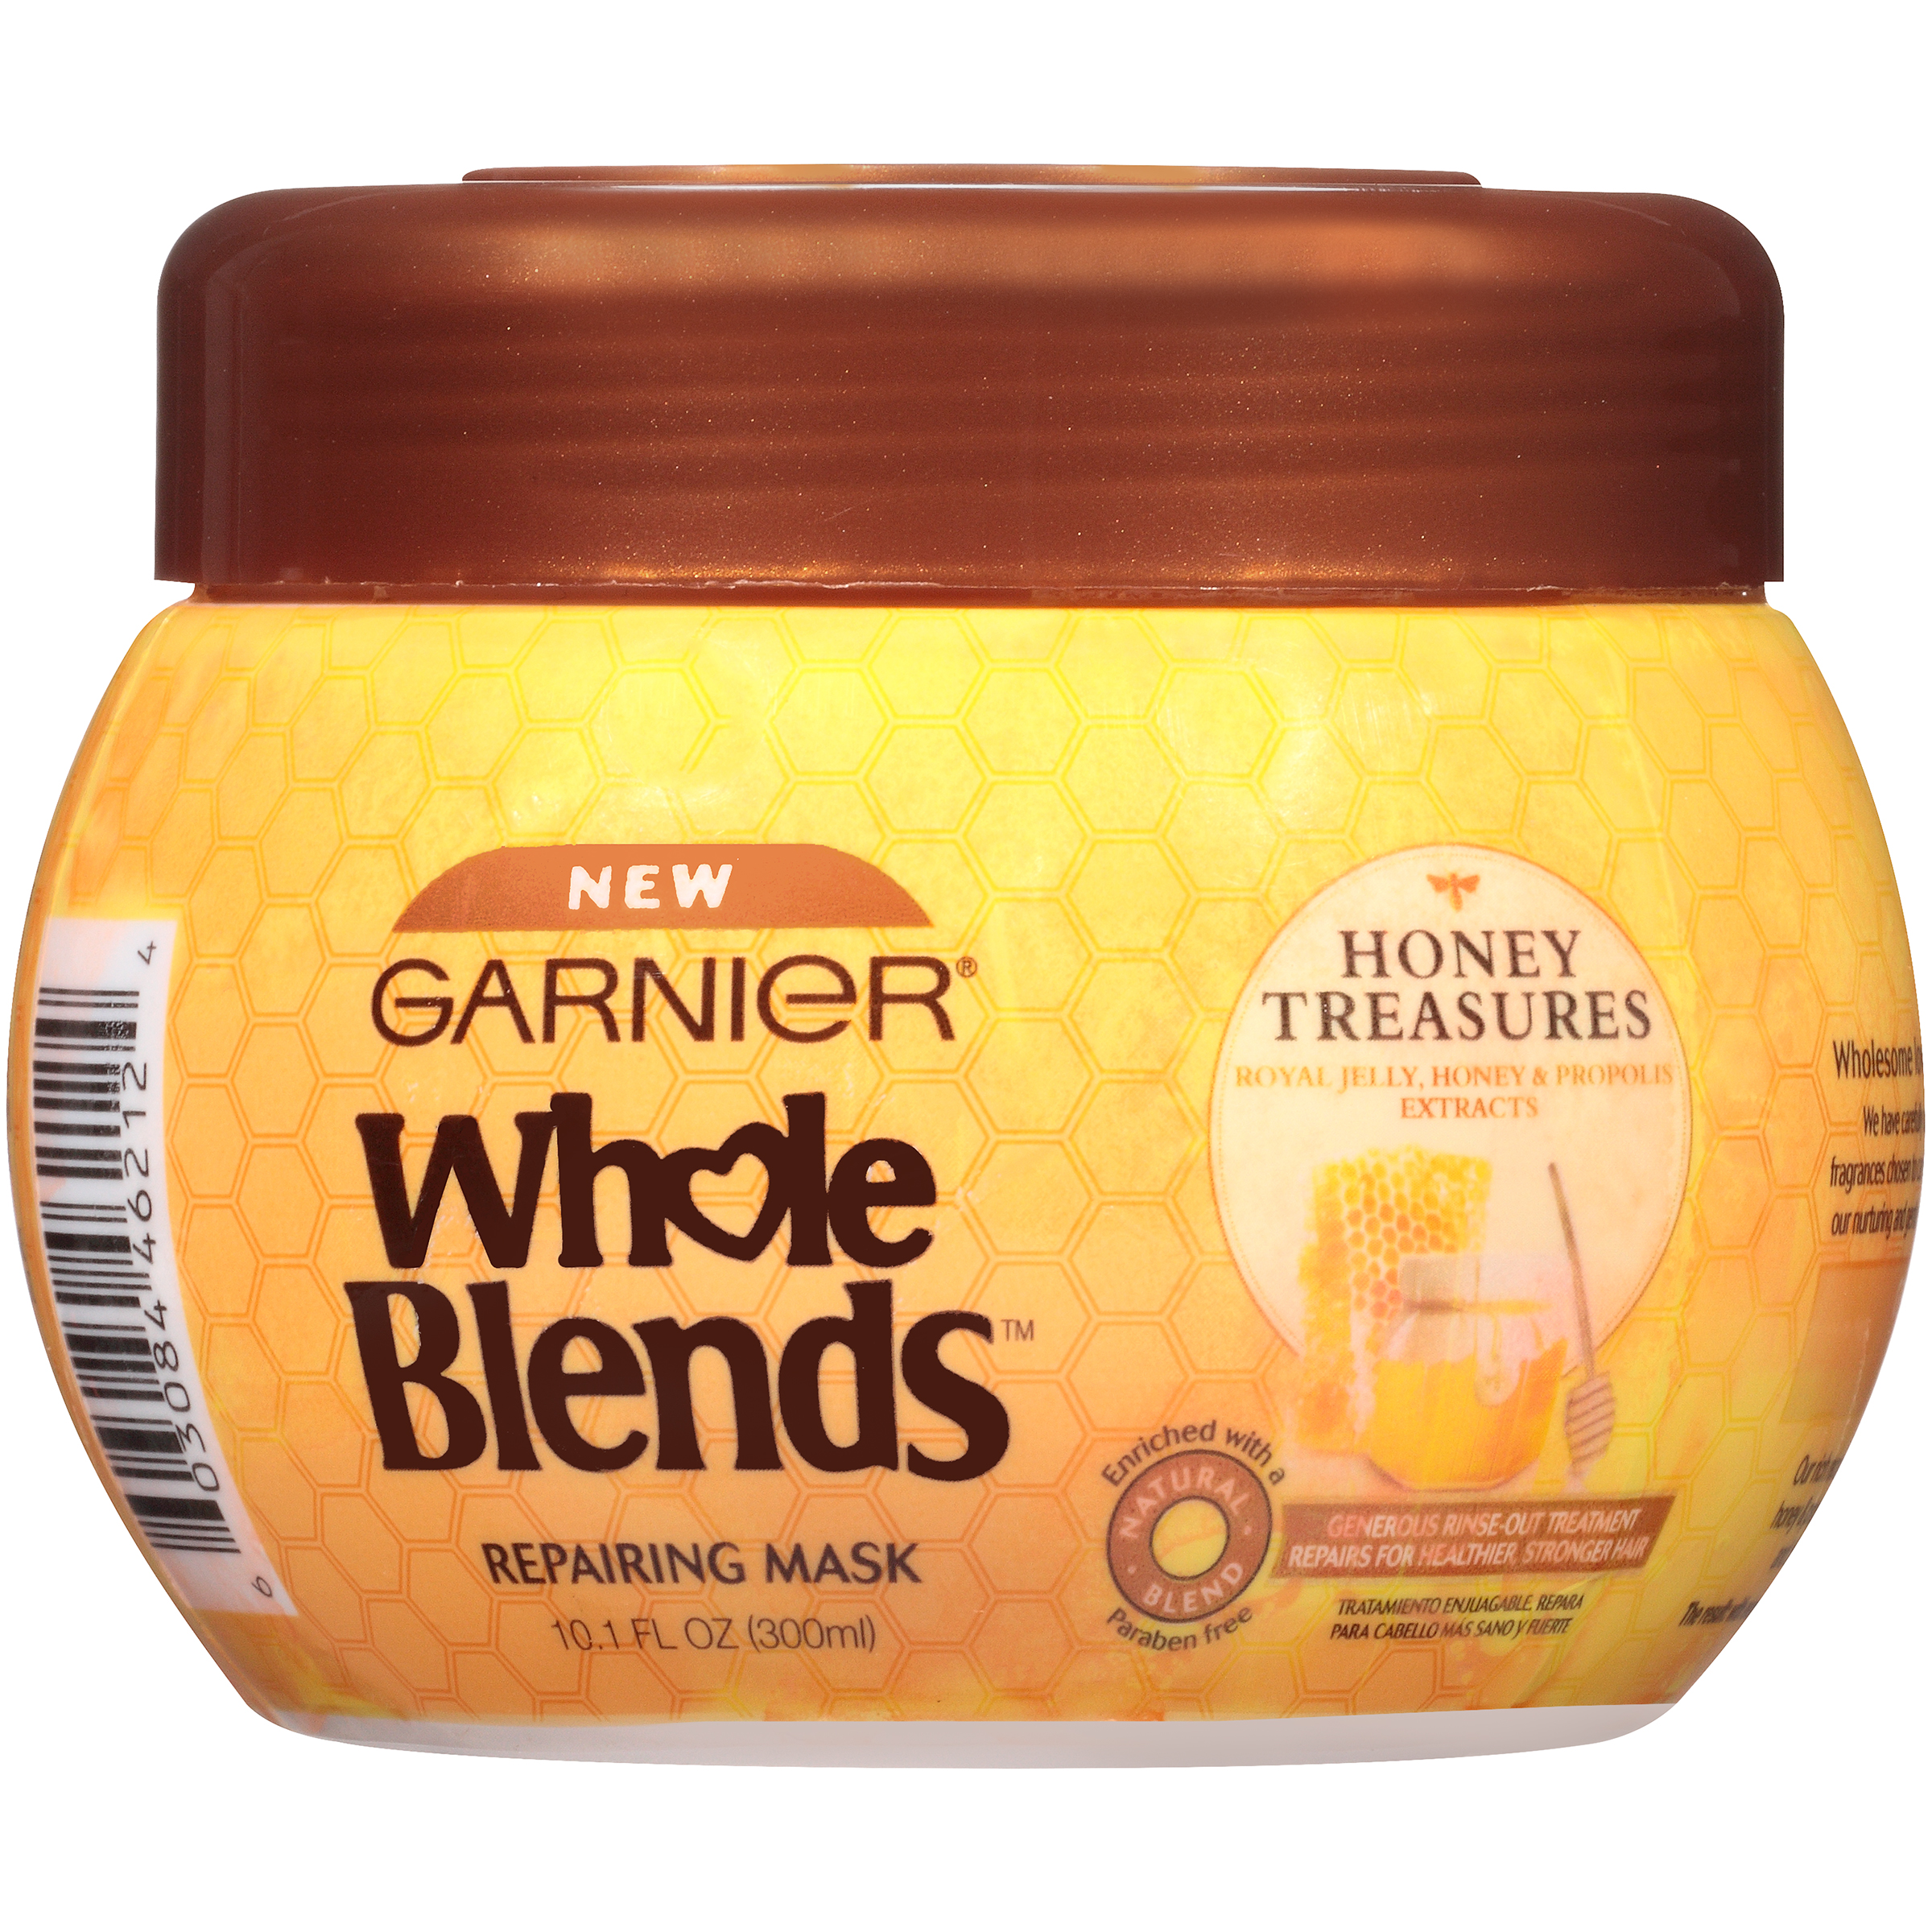 Garnier Whole Blends Honey Treasures Repairing Mask, 10.1 fl oz